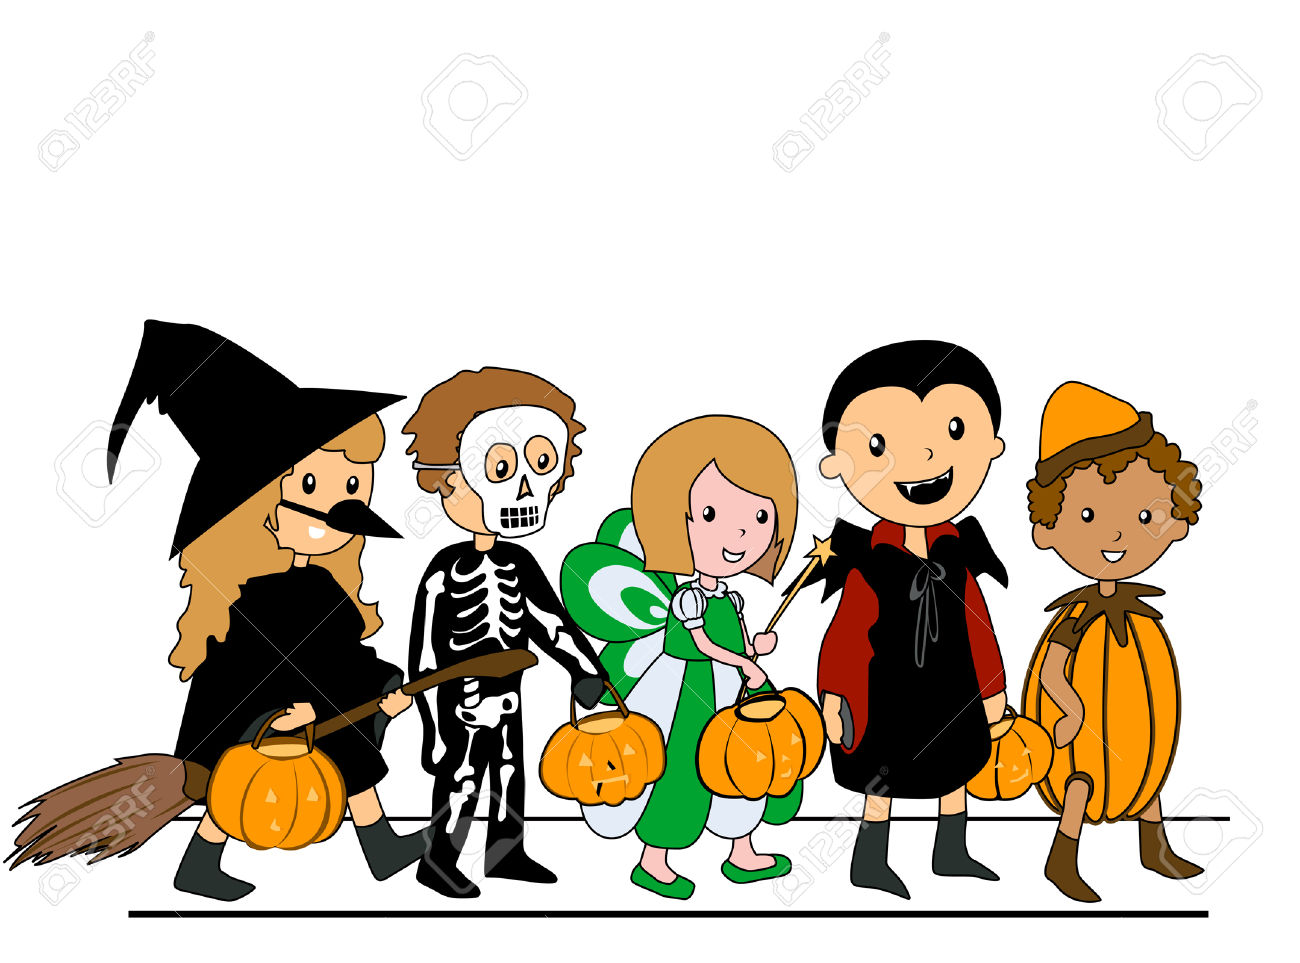 1300x963 Halloween Costume Clip Art Amp Look At Halloween Costume Clip Art